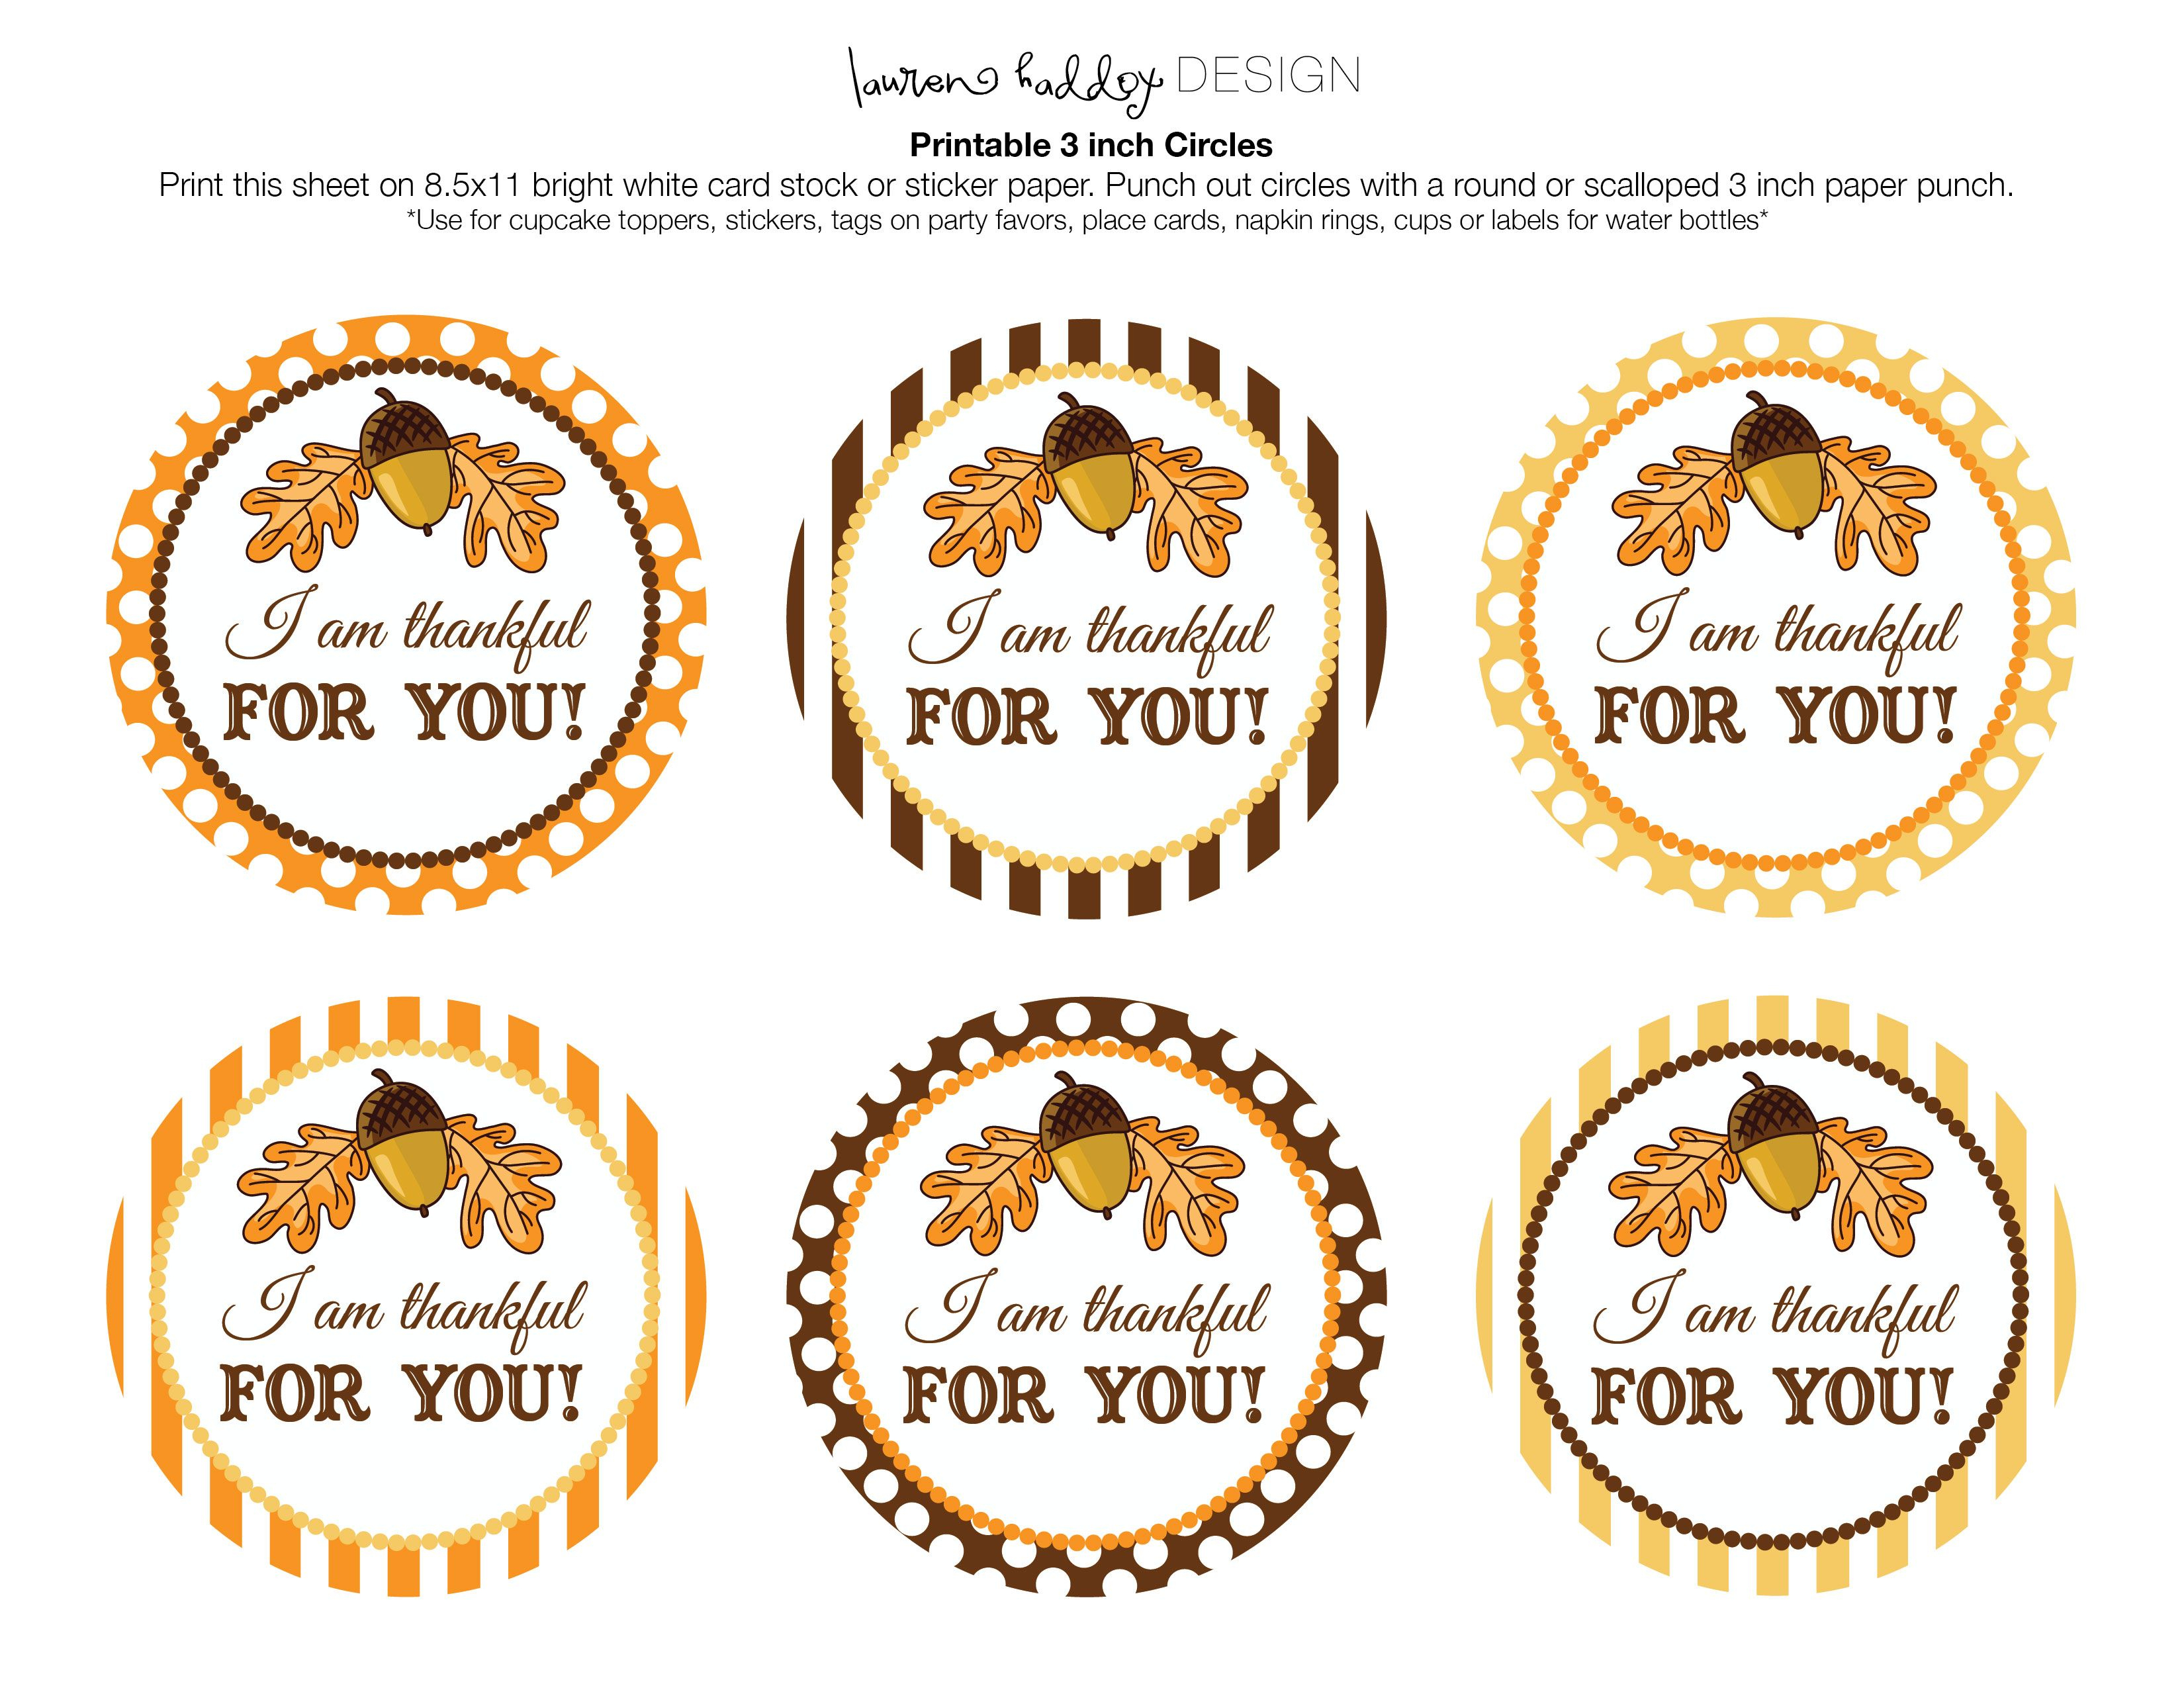 Pincathy Carr On Ho Ho Ho | Pinterest | Thanksgiving Gifts - Thankful For You Free Printable Tags